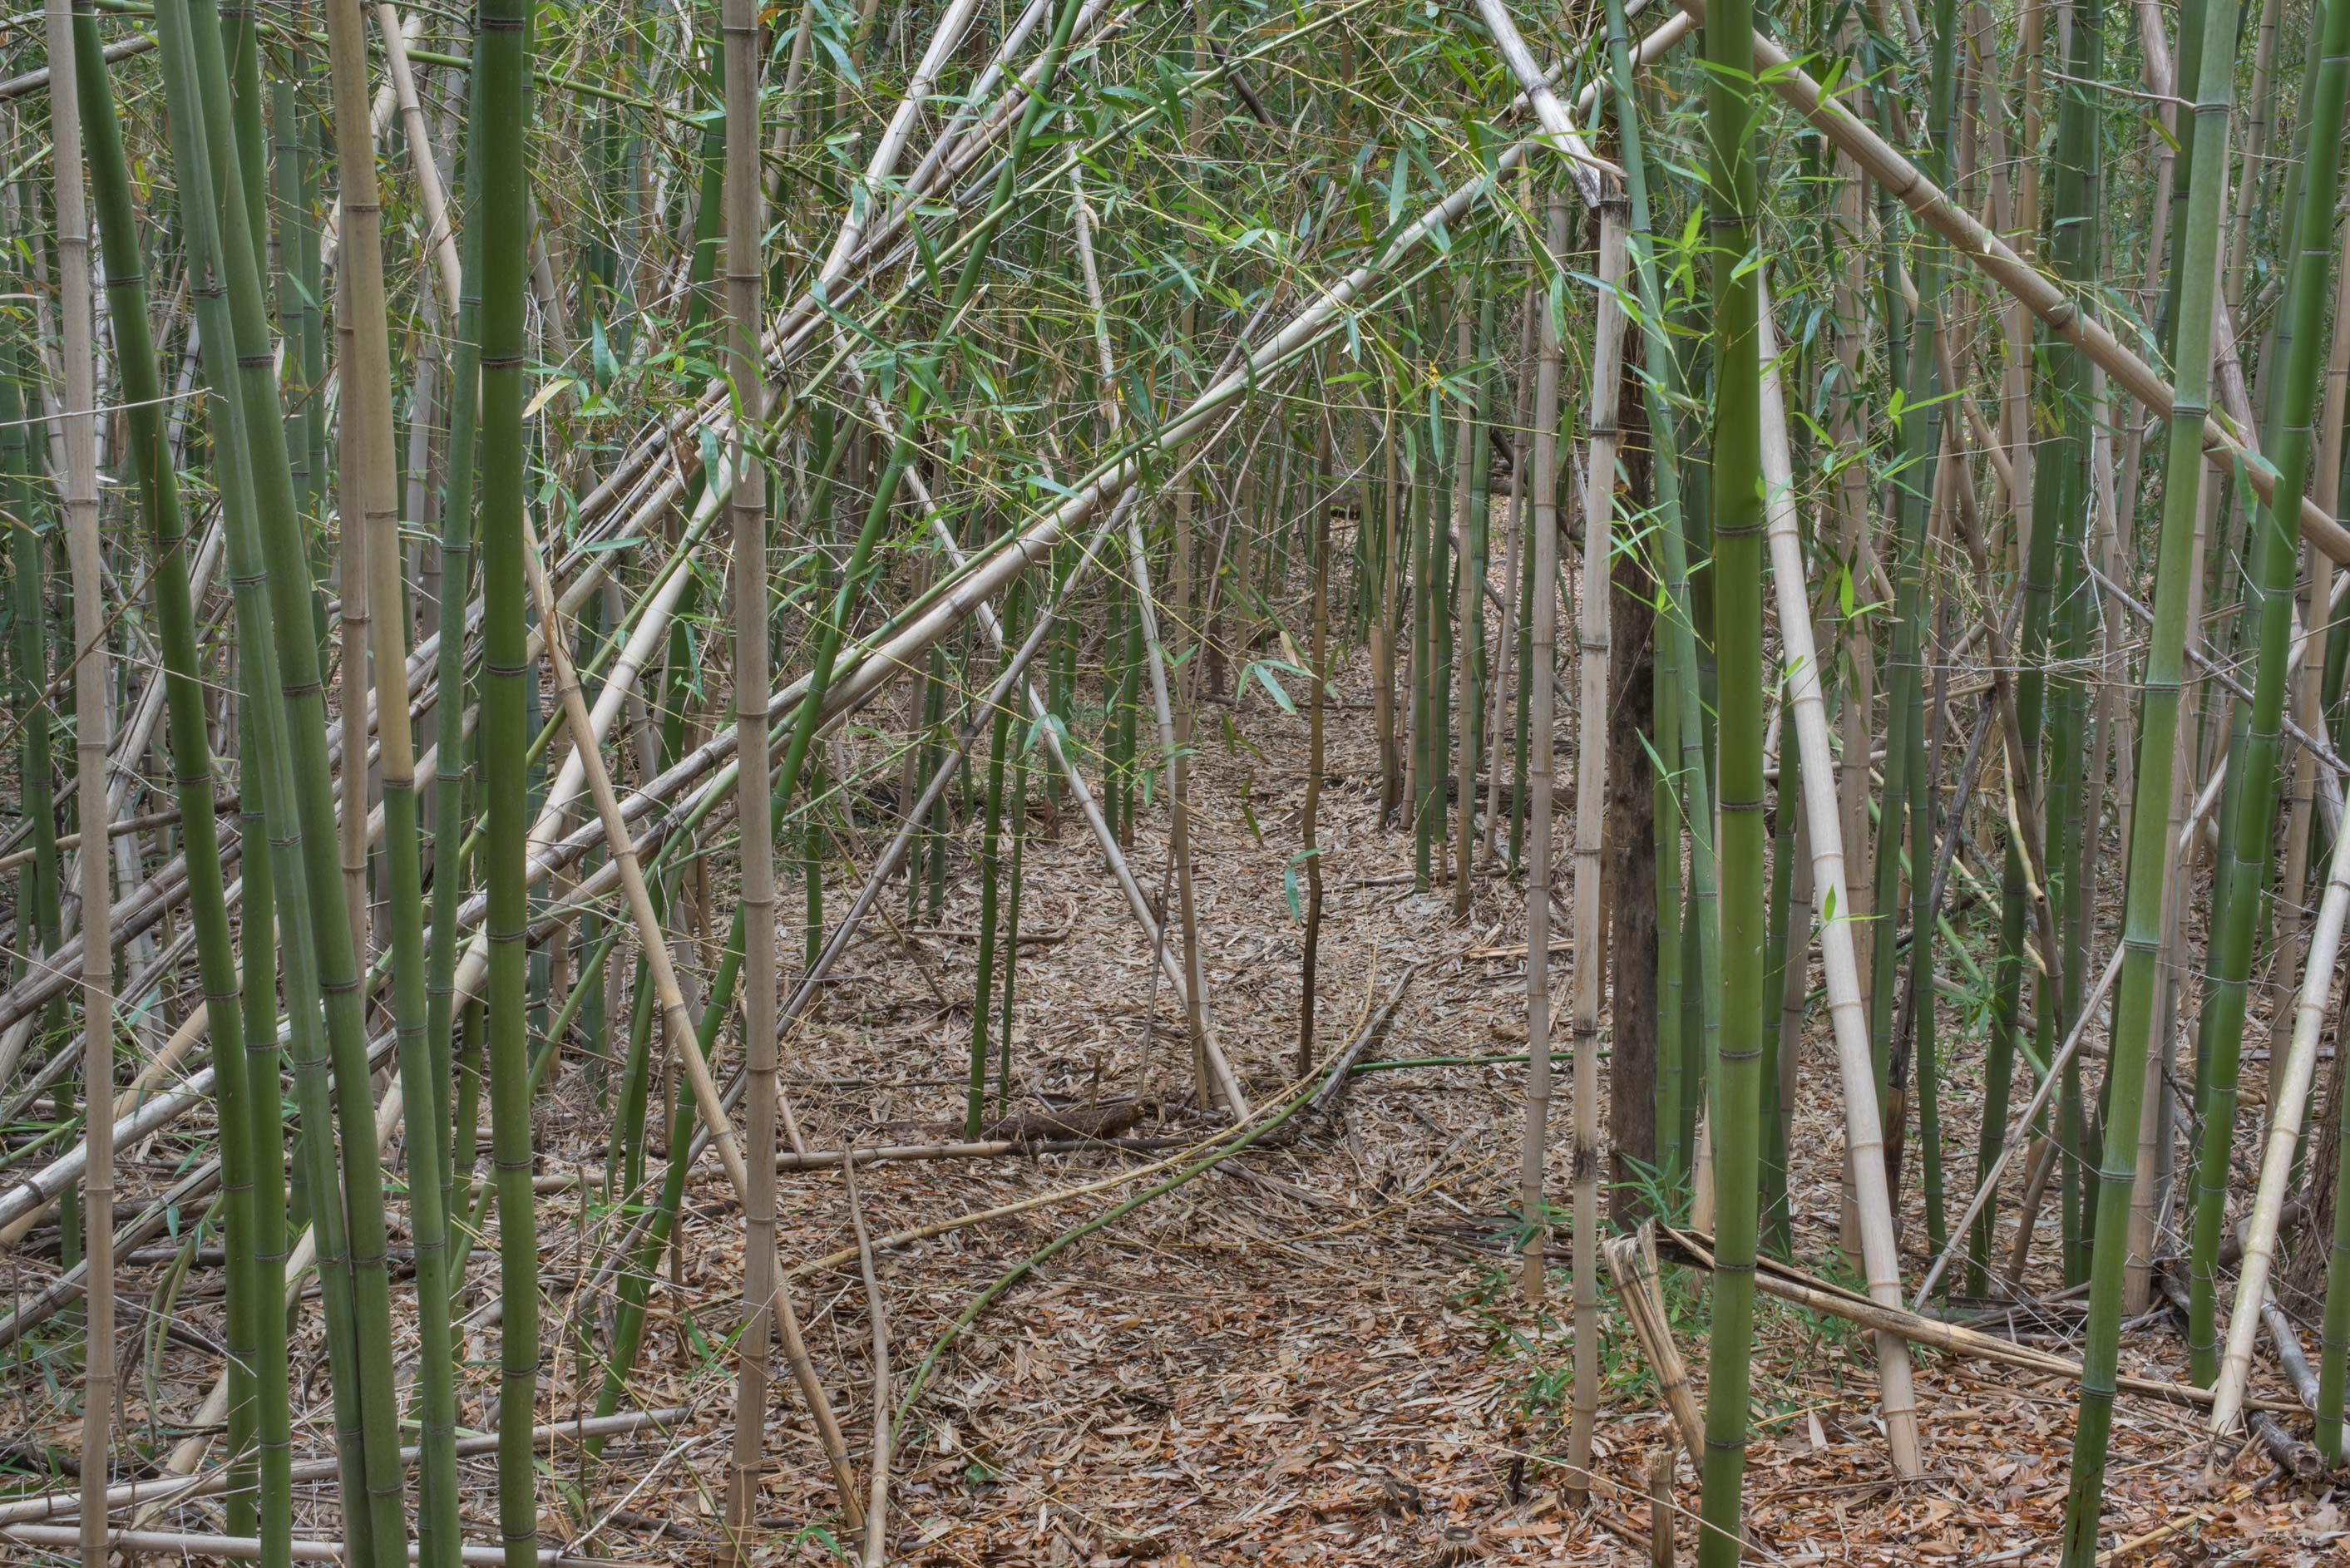 Bamboo forest on Kiwanis Nature Trail. College Station, Texas